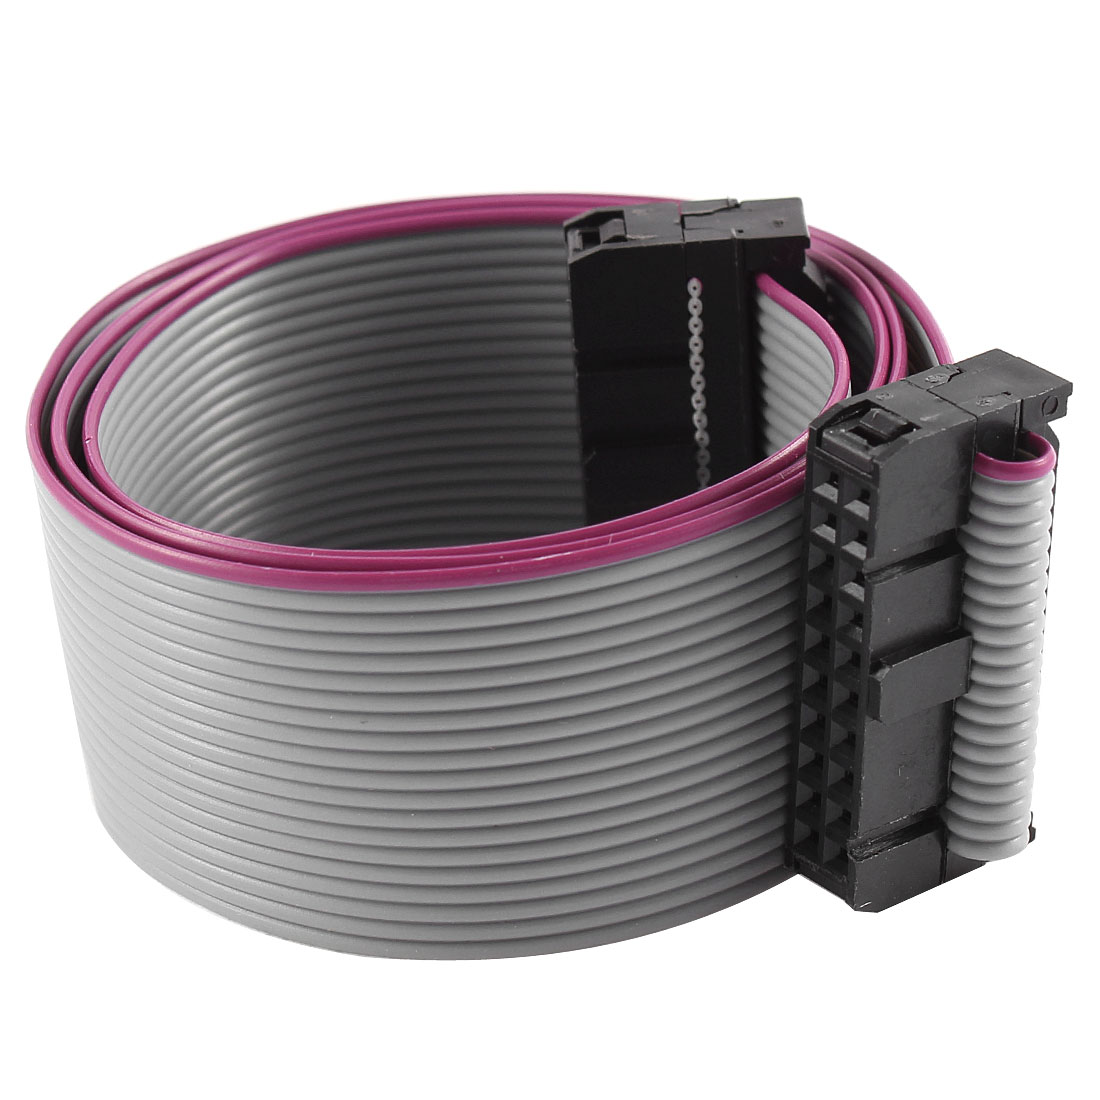 2.54mm Pitch 2x20P 20 Pin 20 Wire Female to Female IDC Flat Ribbon Cable 48cm